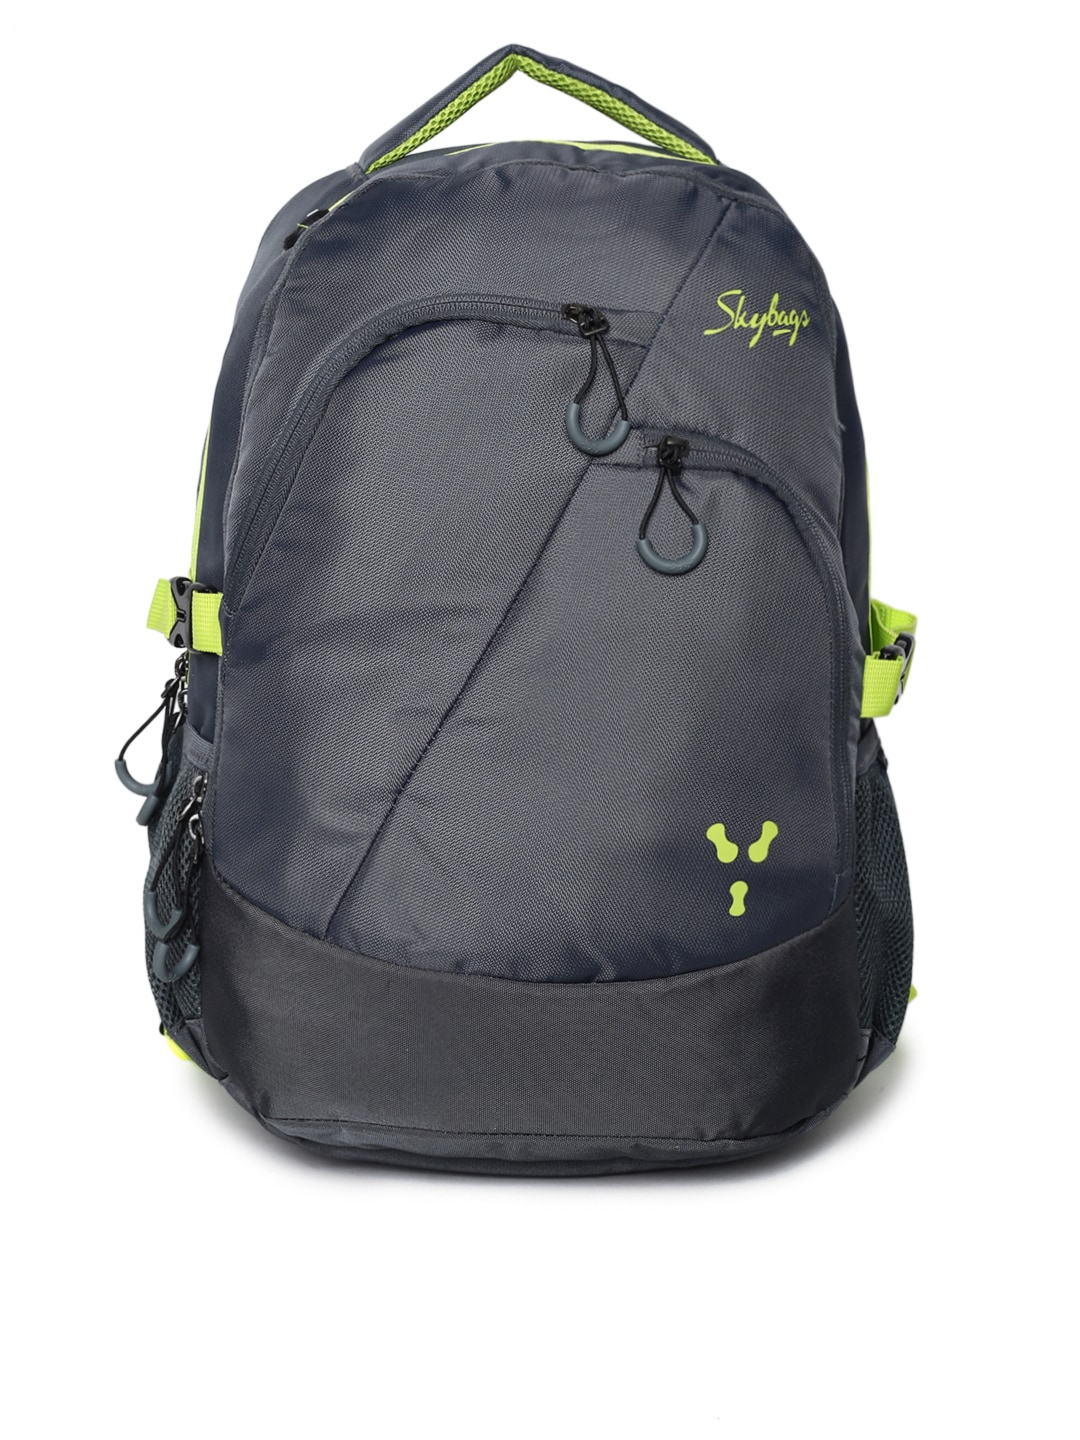 Skybags - Buy Skybags Online at Best Price in India  1b3d27b769186